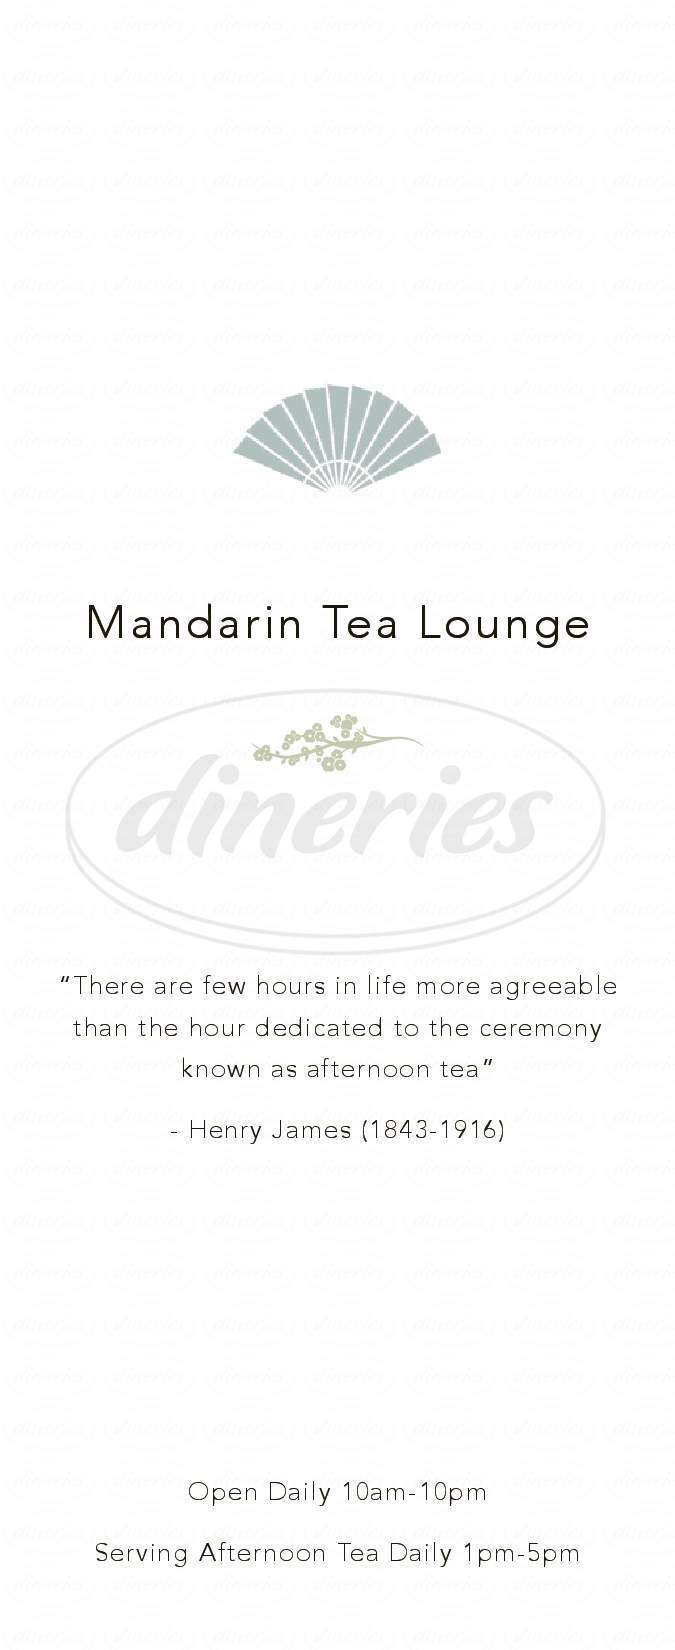 menu for Mandarin Oriental Tea Lounge